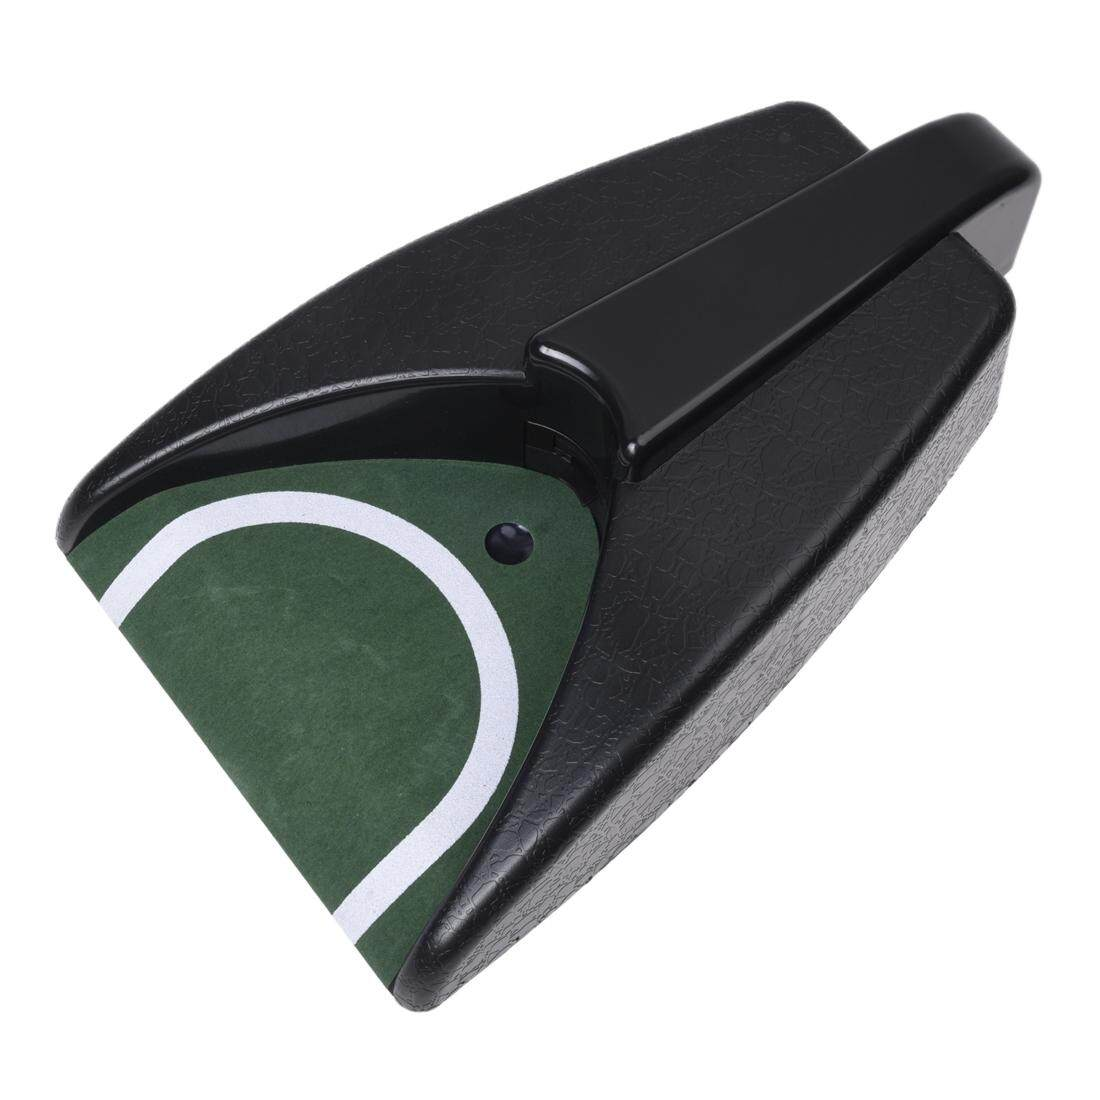 Battery Operated Auto Return Putting Mat Golf Practice Cup Intl Price